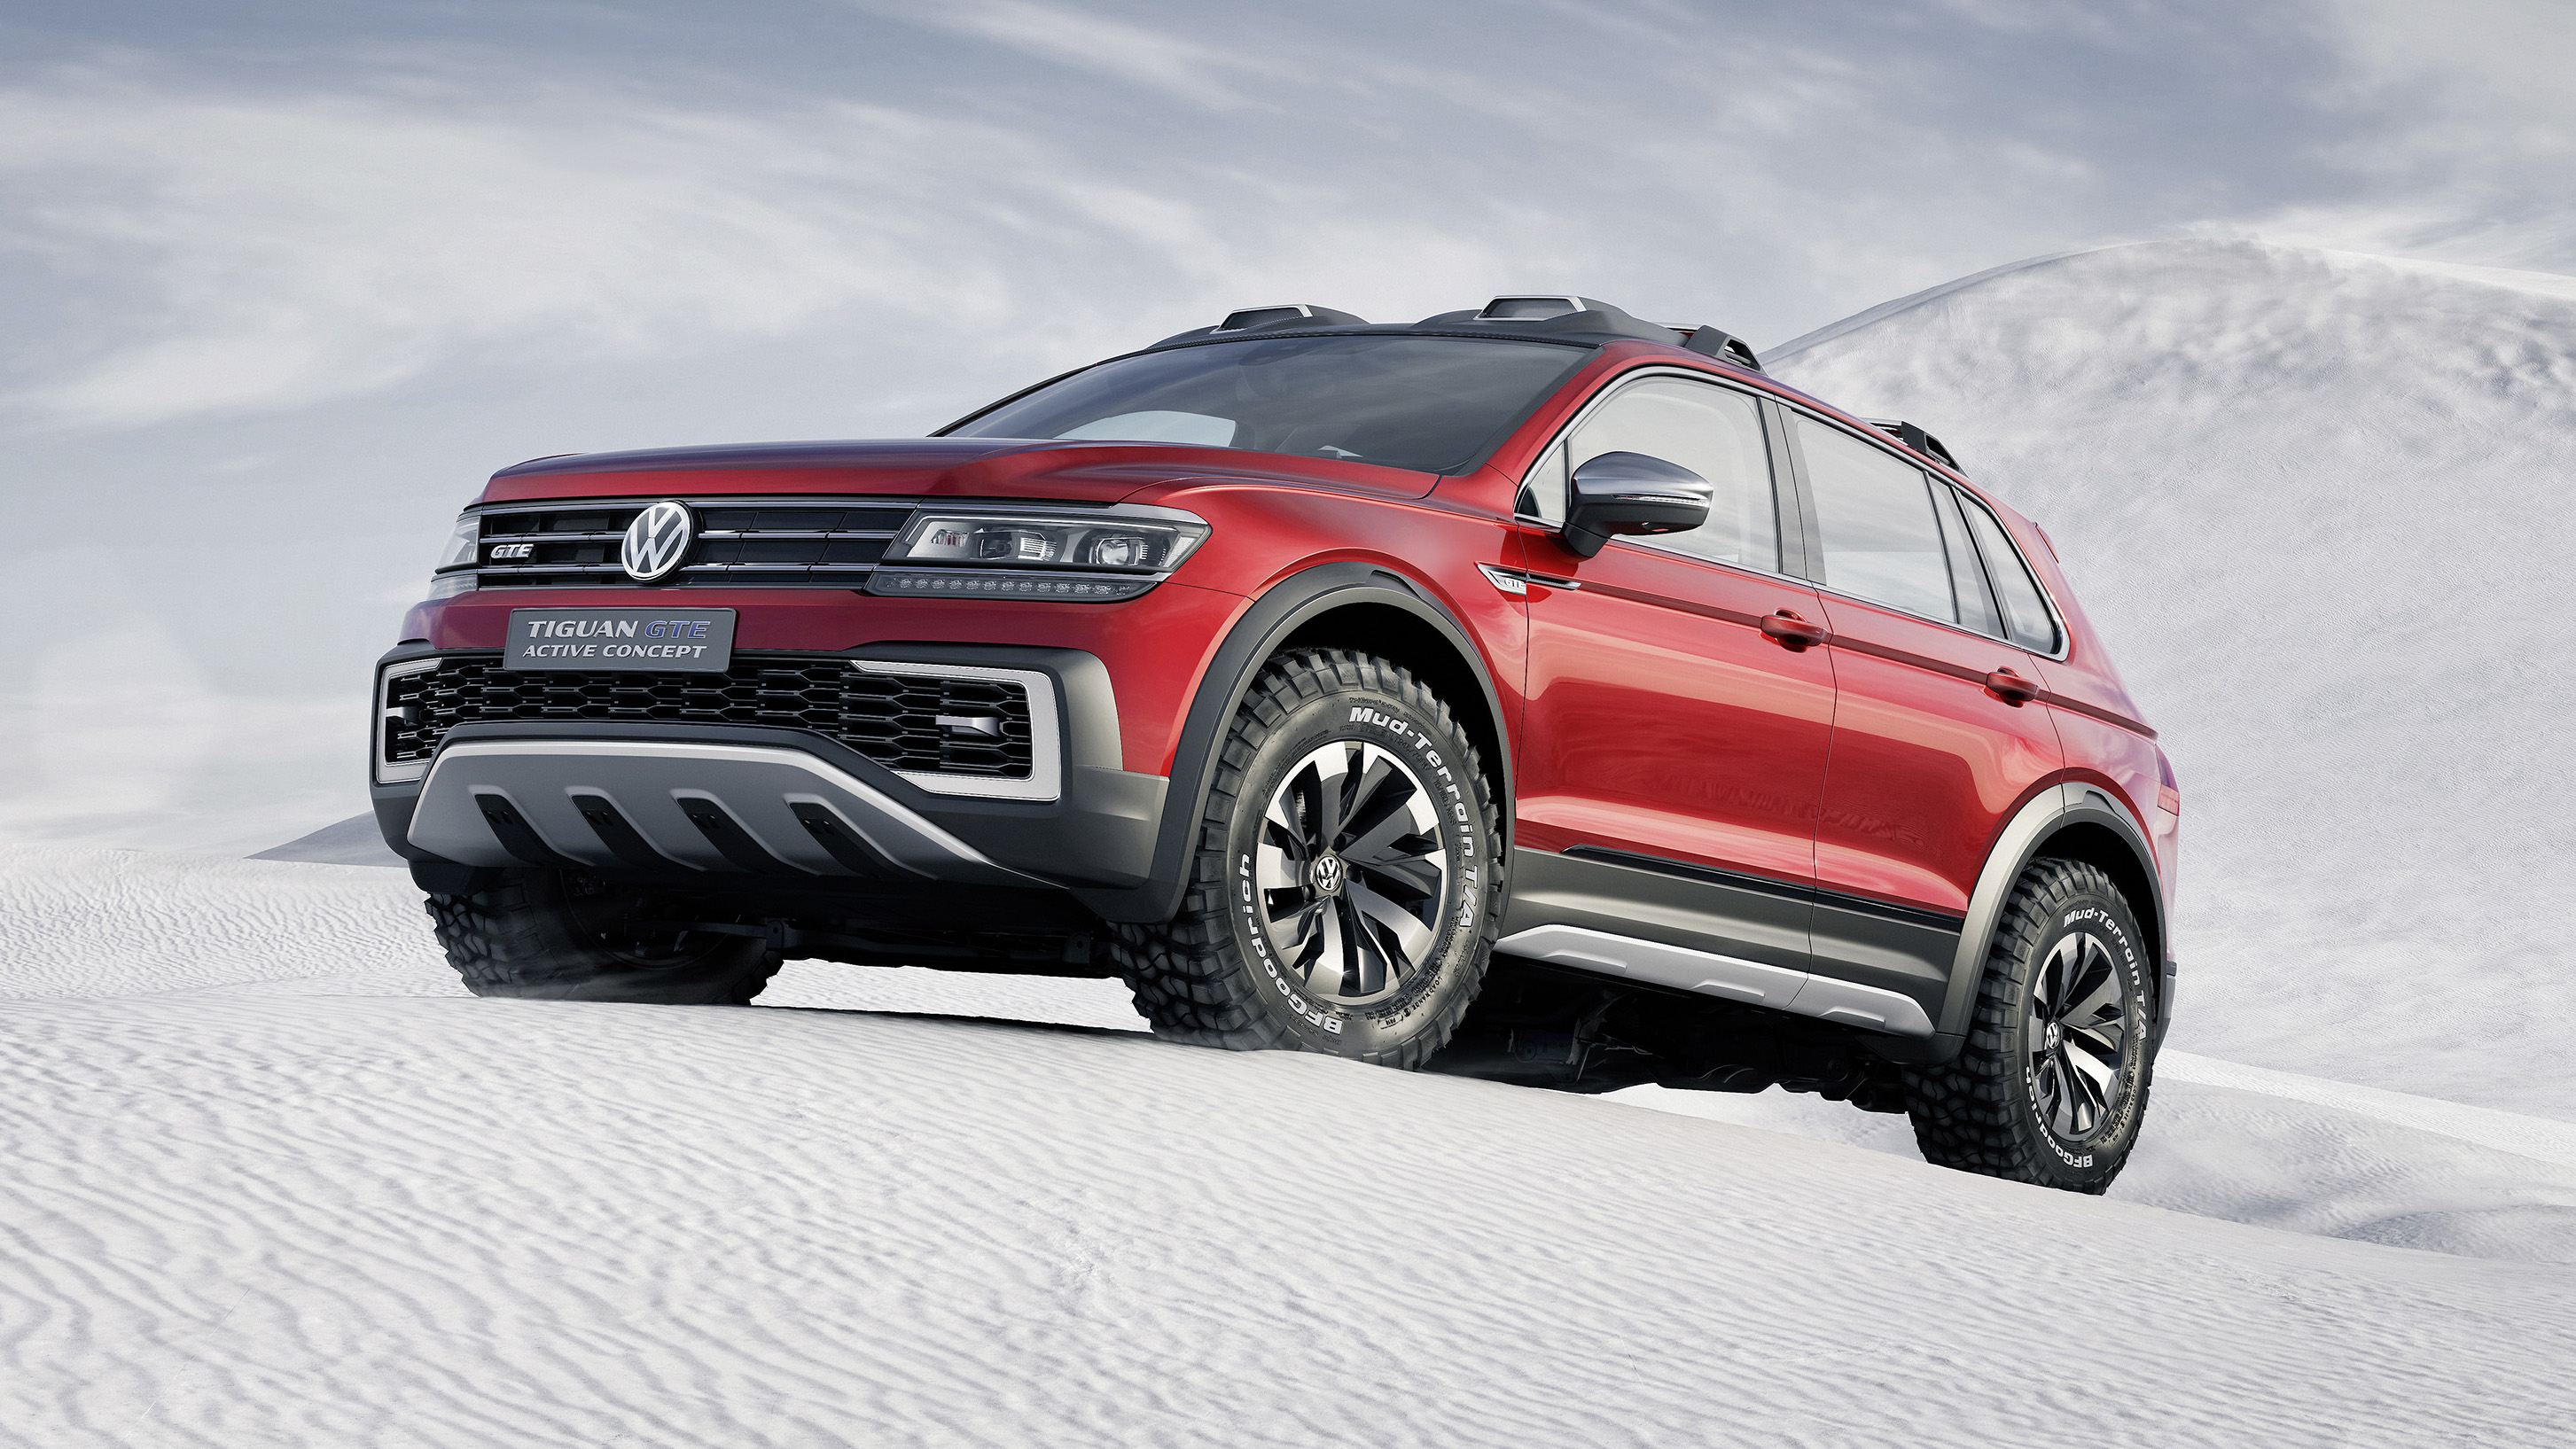 this tiguan gte is vw 39 s knobbly tyred 222bhp hybrid suv. Black Bedroom Furniture Sets. Home Design Ideas